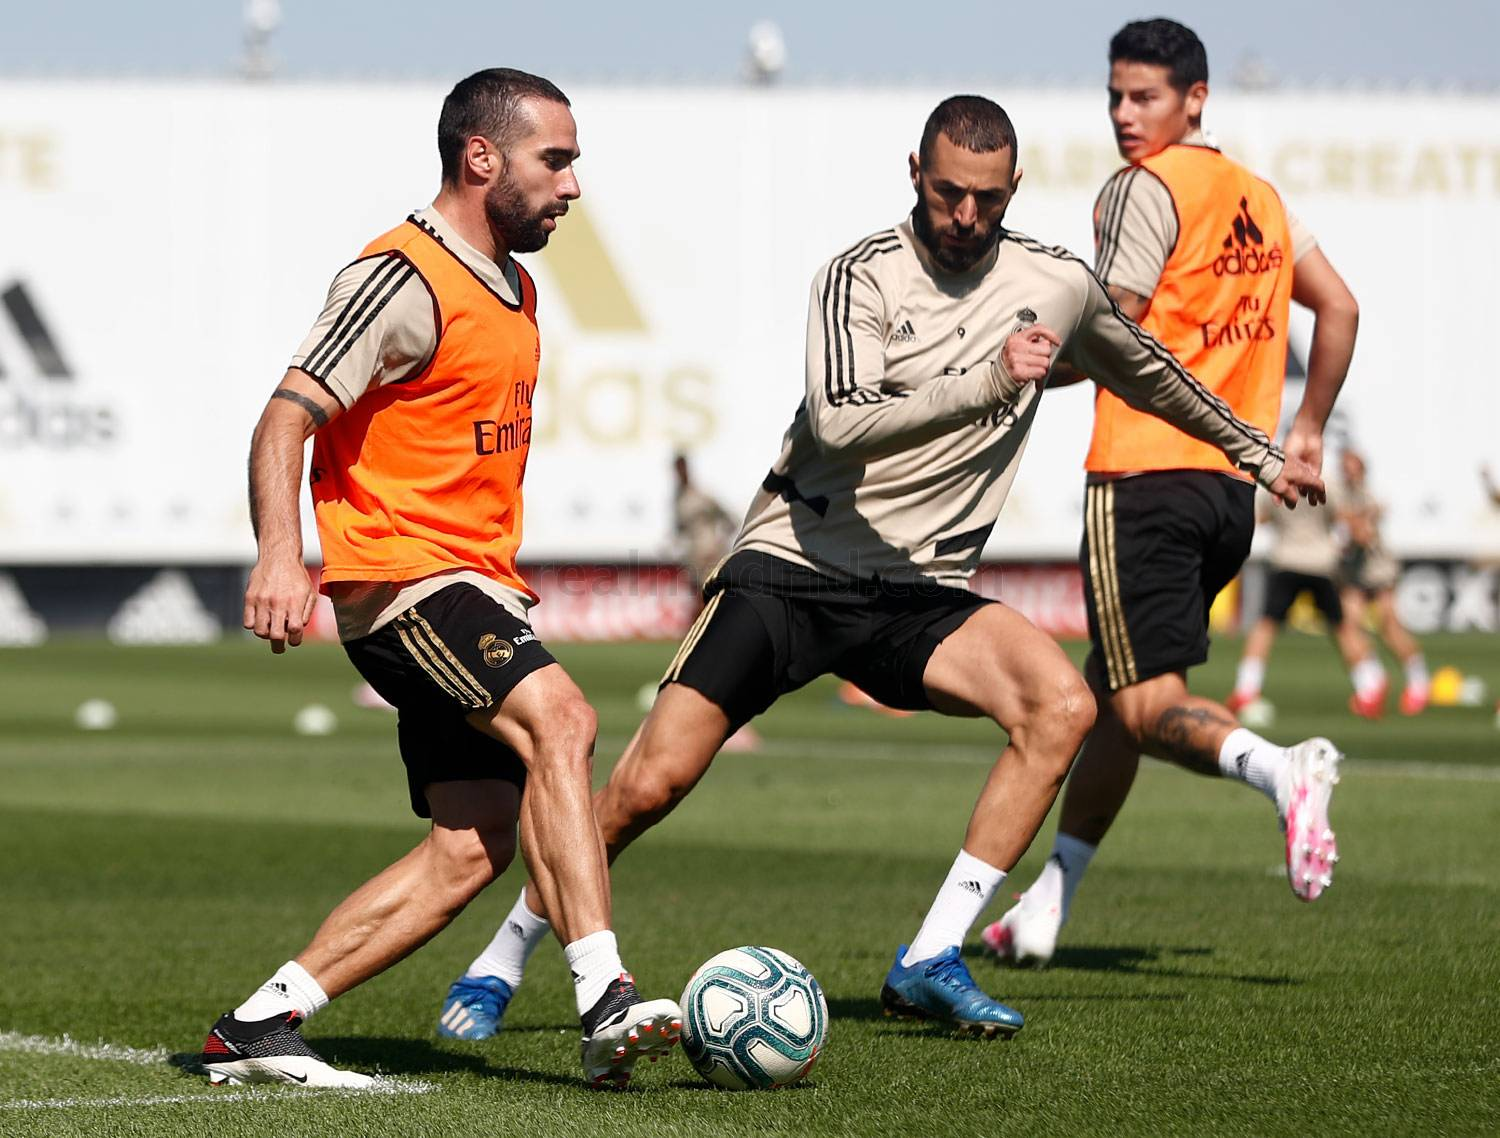 Real Madrid - Entrenamiento del Real Madrid  - 27-05-2020